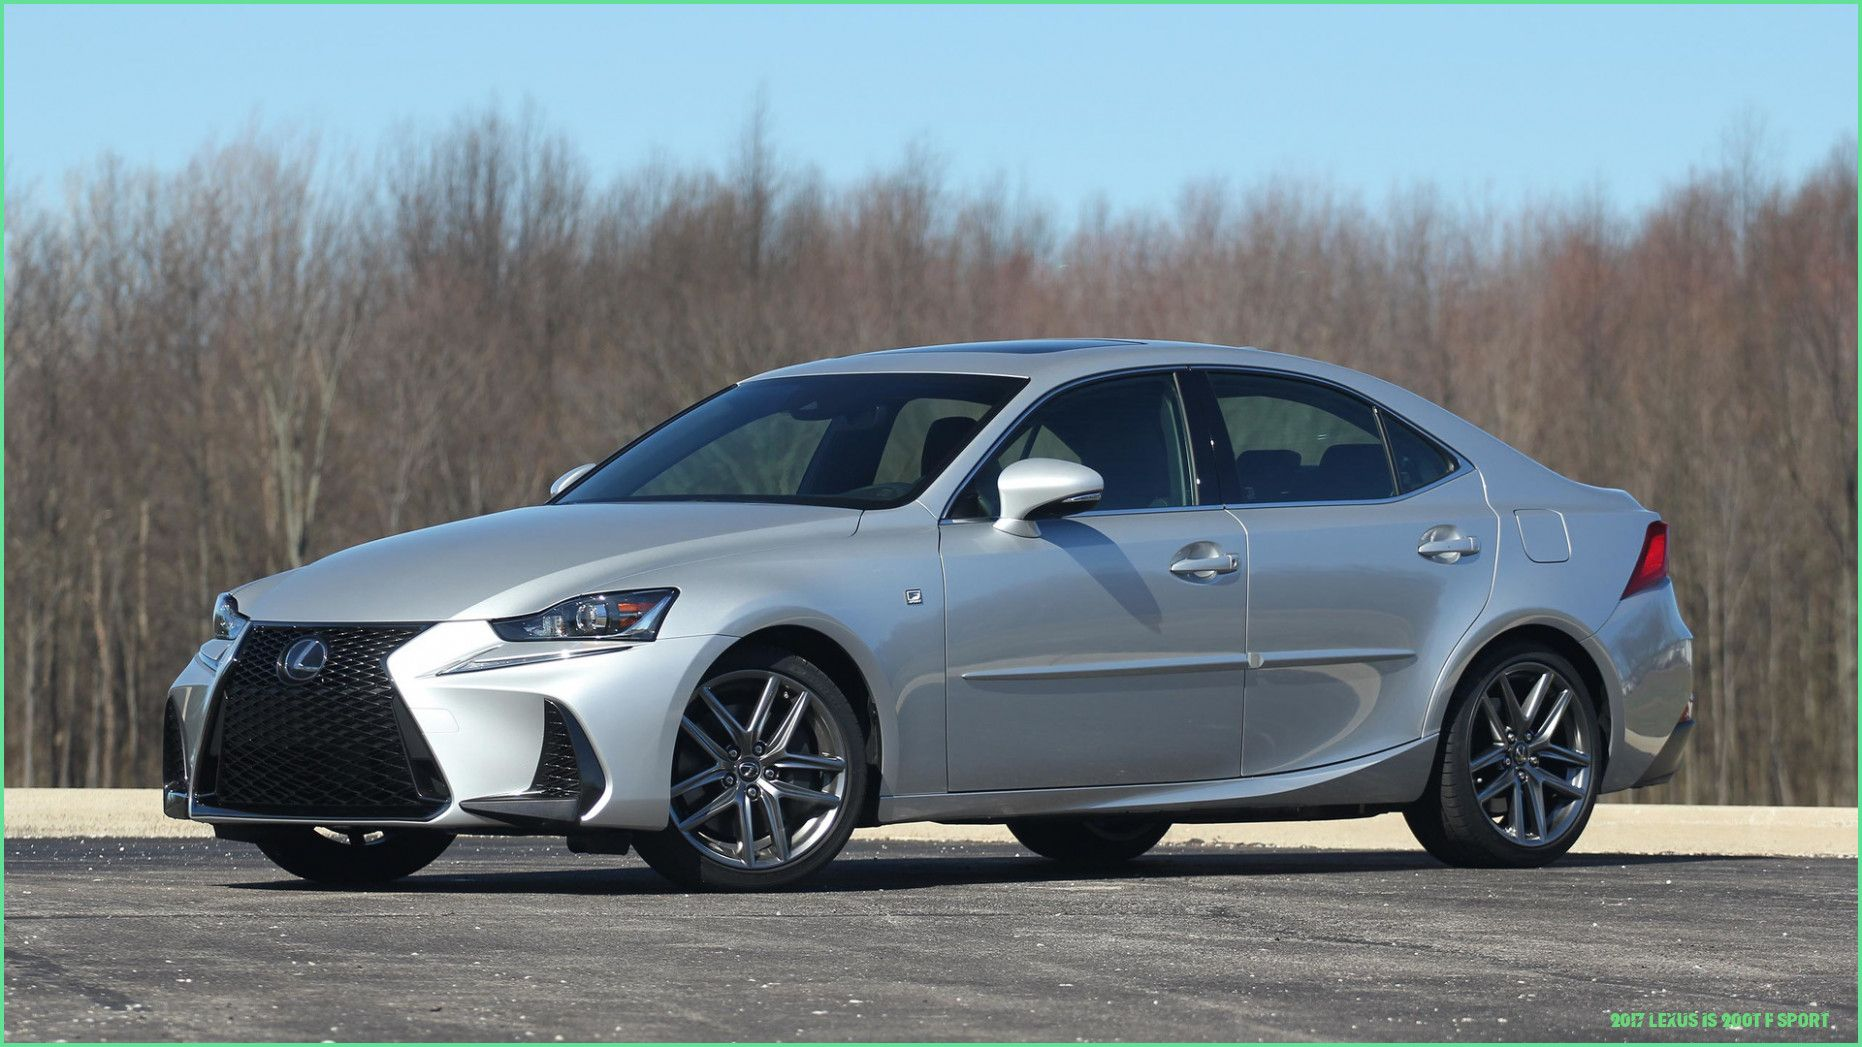 Is 10 Lexus Is 10t F Sport Still Relevant 10 Lexus Is 10t F Sport Https Sportdrawing Com Is 10 Lexus Is 10t F Sport Still Releva Lexus Lexus Es Lexus Cars